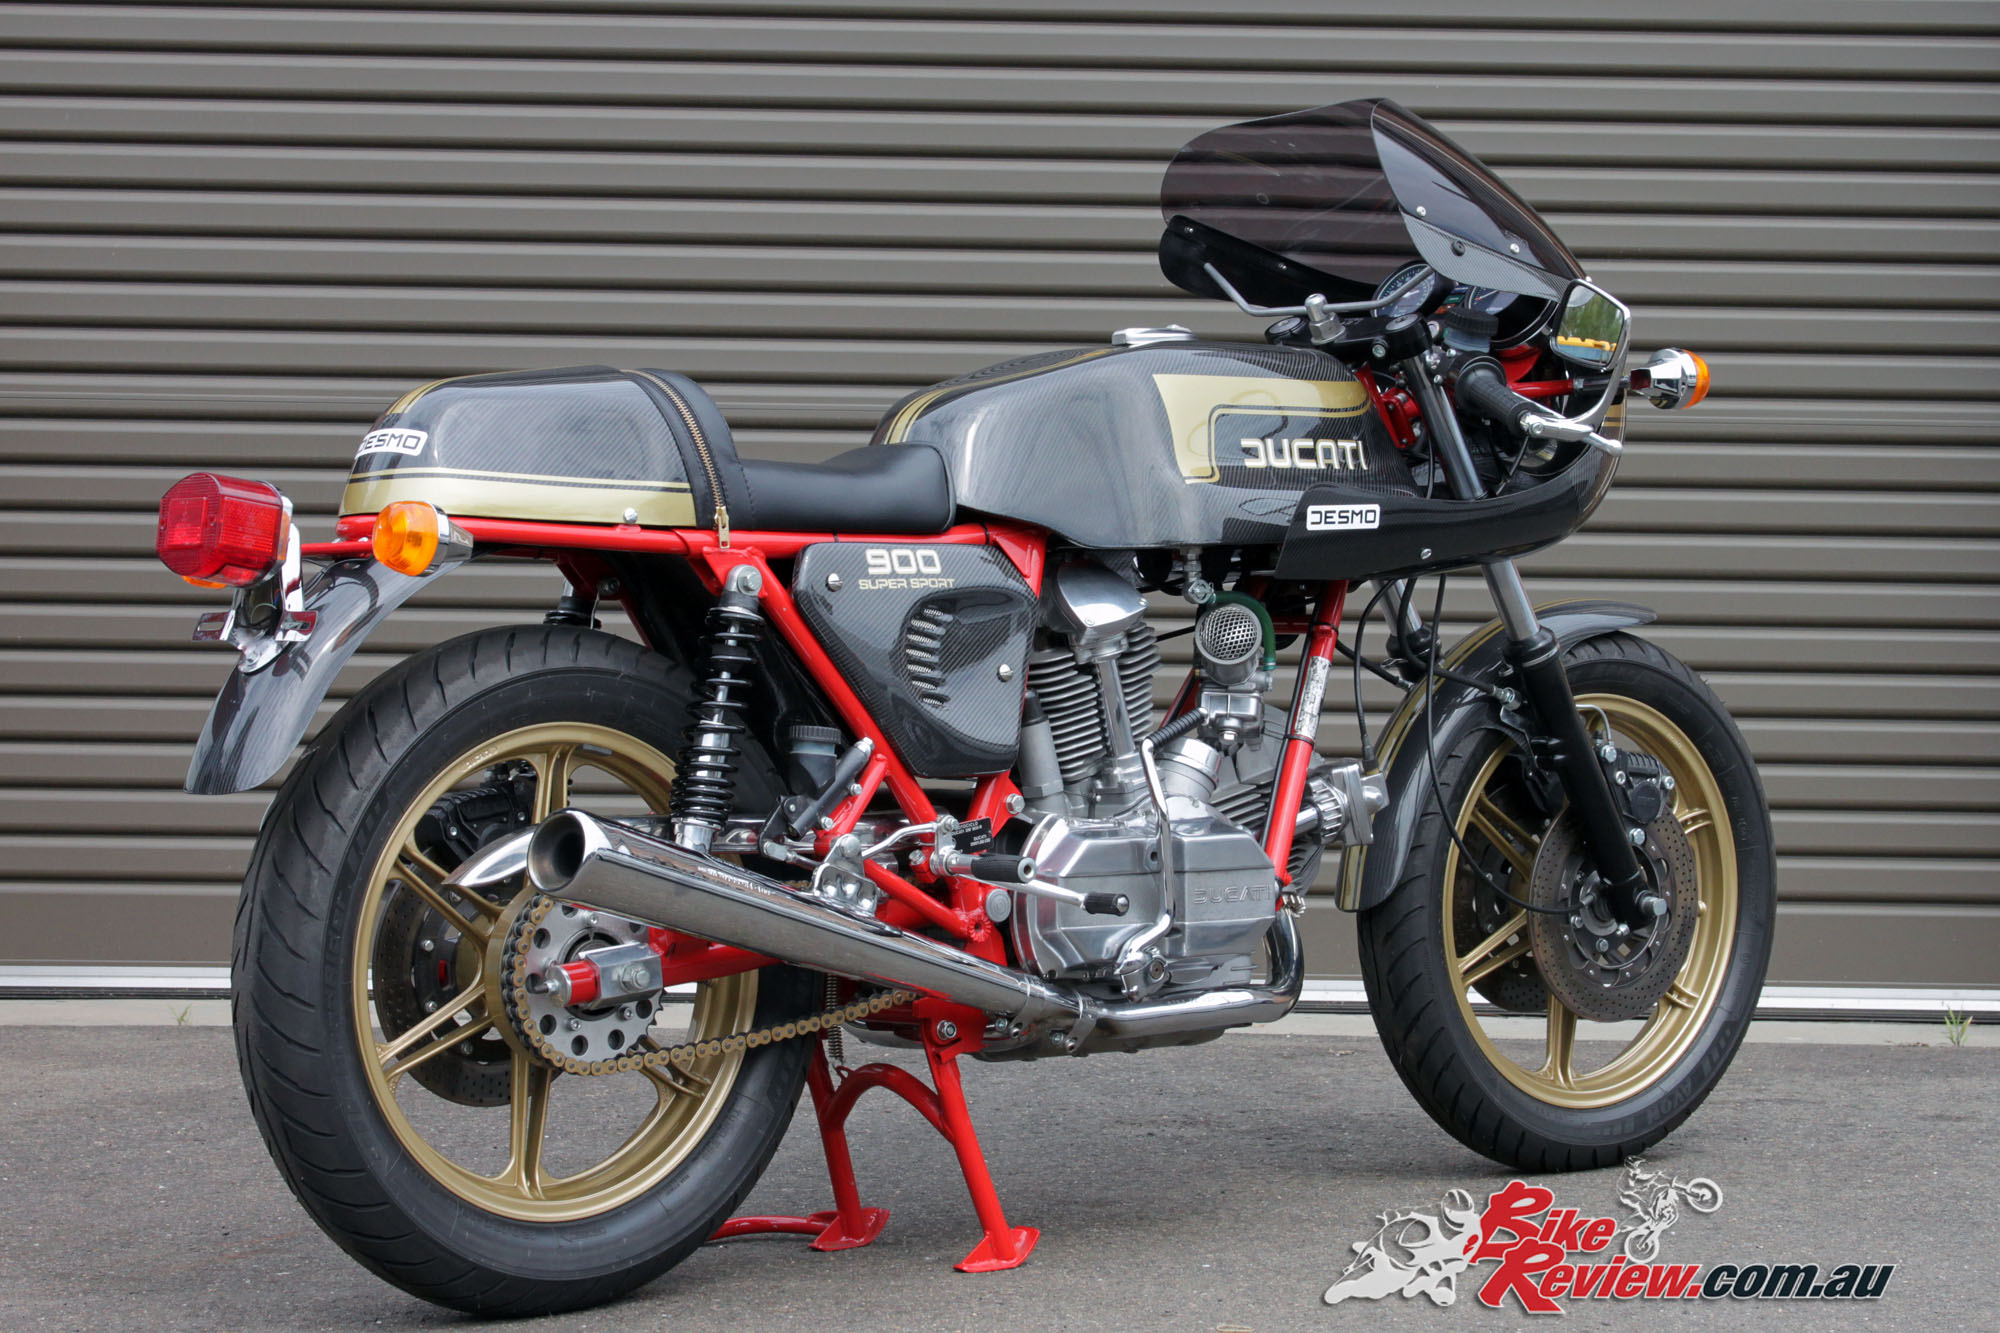 Ducati 900 SS Hailwood-Replica 1984 images #78715